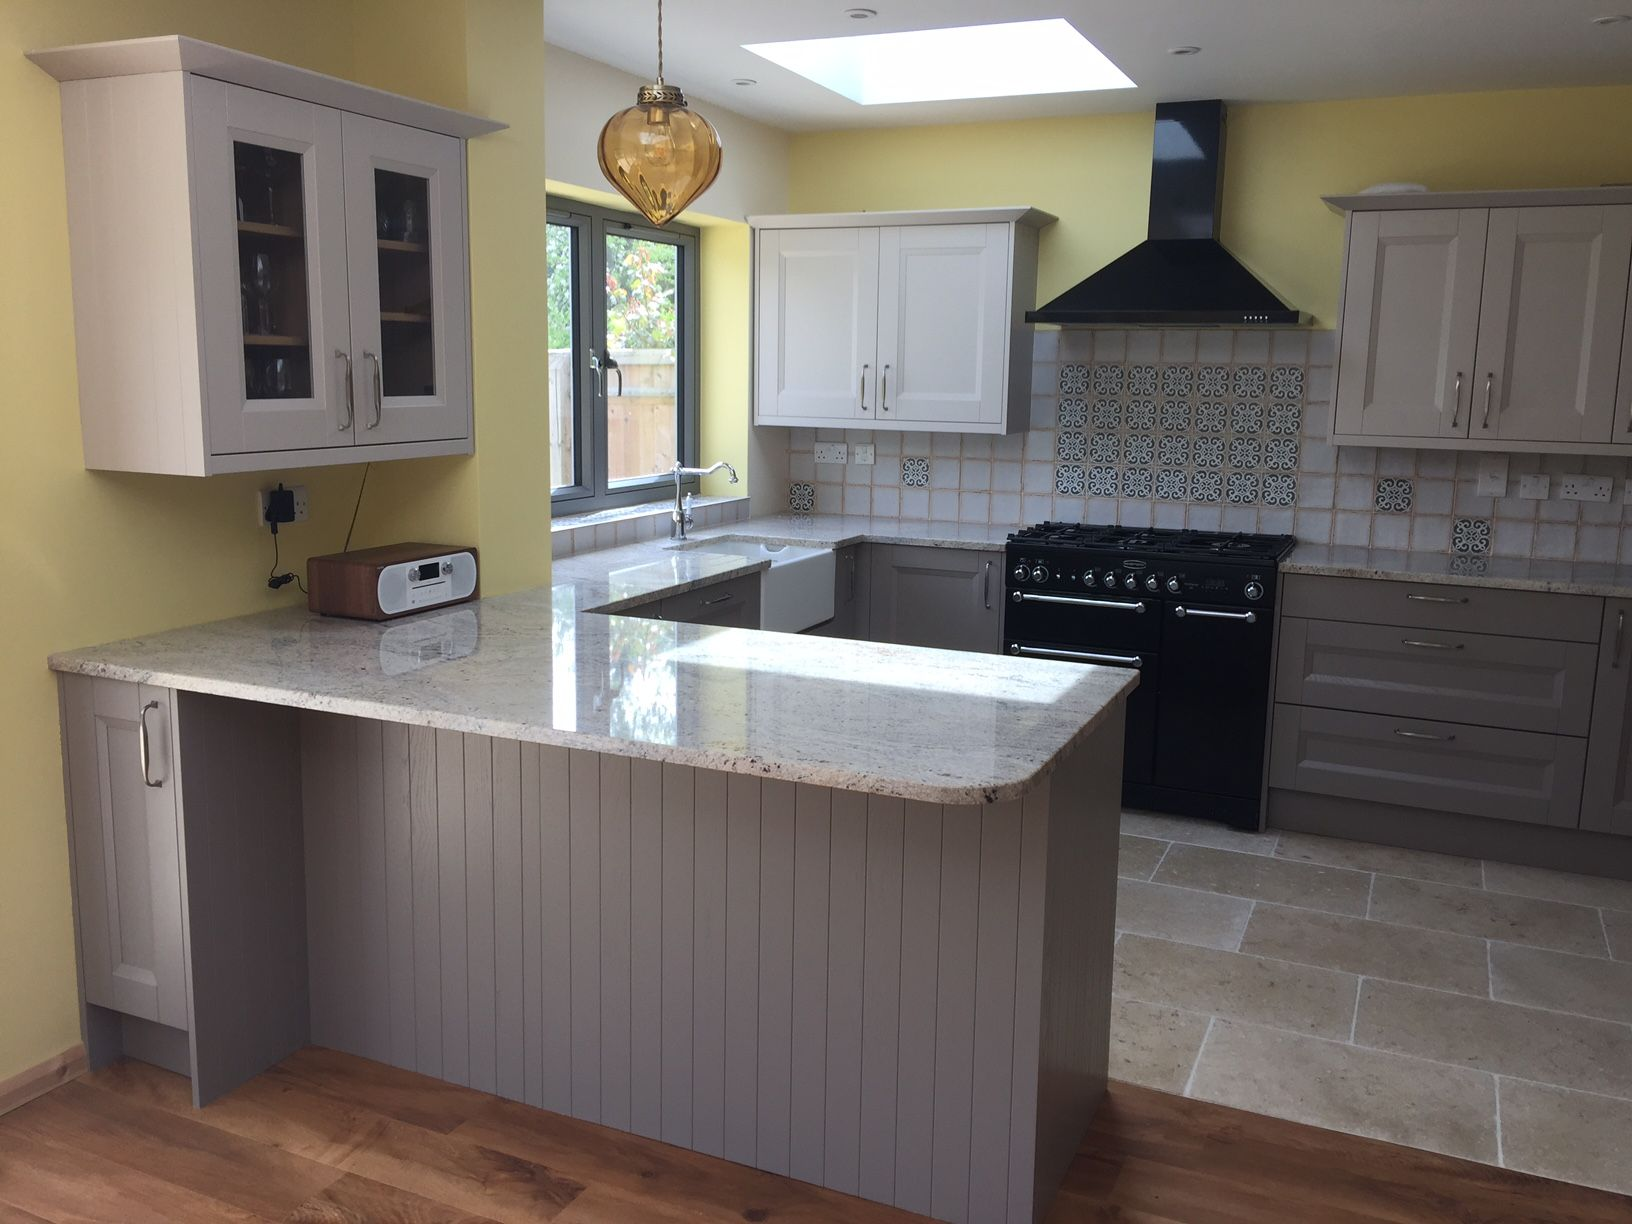 Hilton Painted Kitchen Units in 2 tone colours with Ivory Fantasy ...